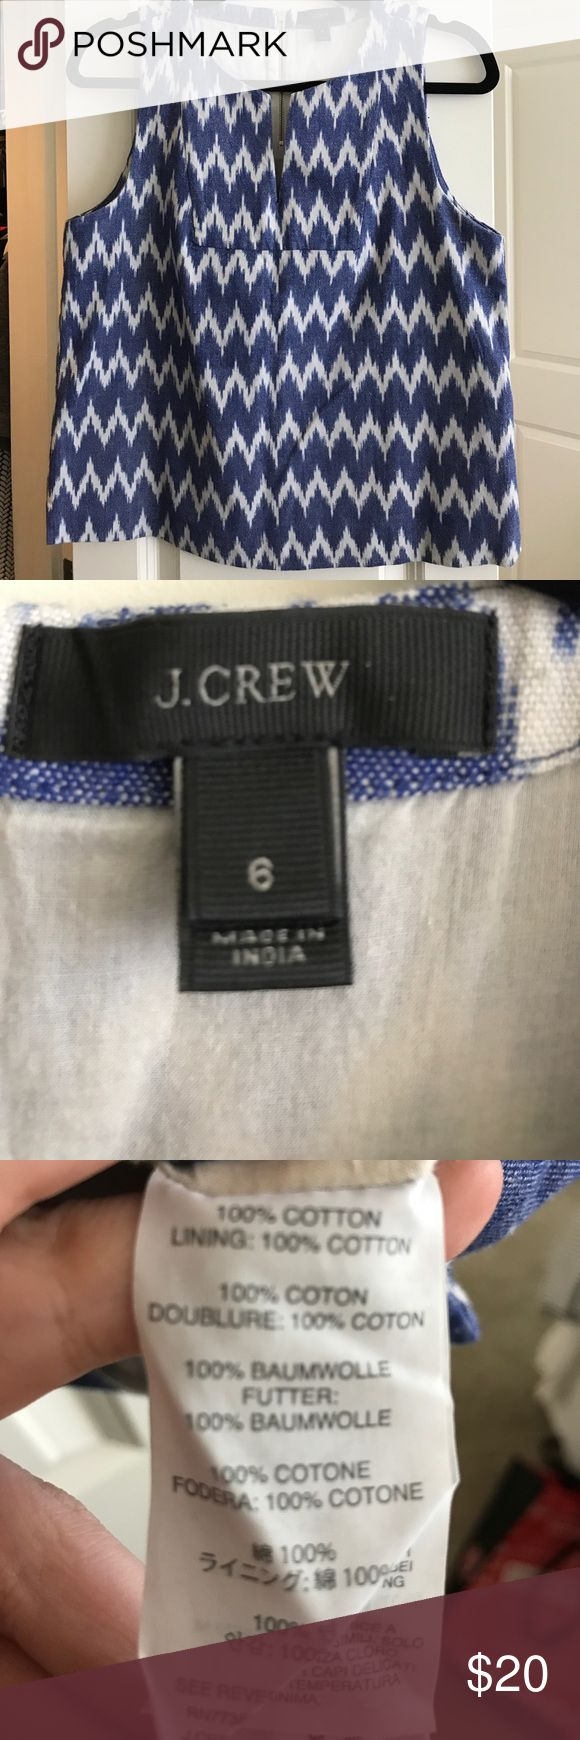 J.Crew blue and white Ikat top J.Crew blue and white Ikat top. Fits true to size. Perfect with white jeans! Only worn once! J. Crew Tops